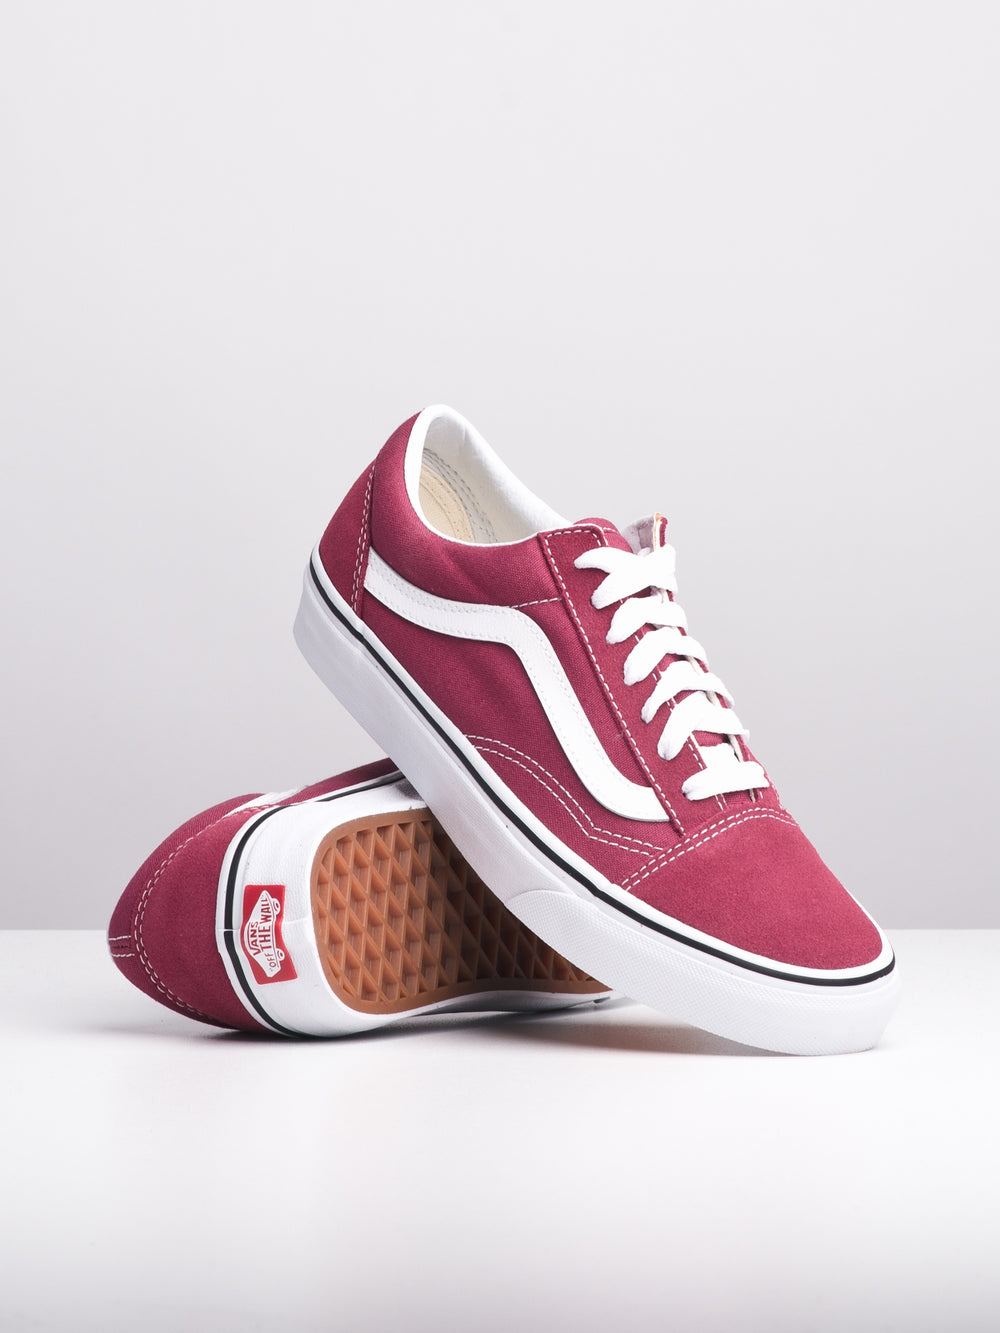 a663c647fa51 WOMENS OLD SKOOL - DRY ROSE WHITE